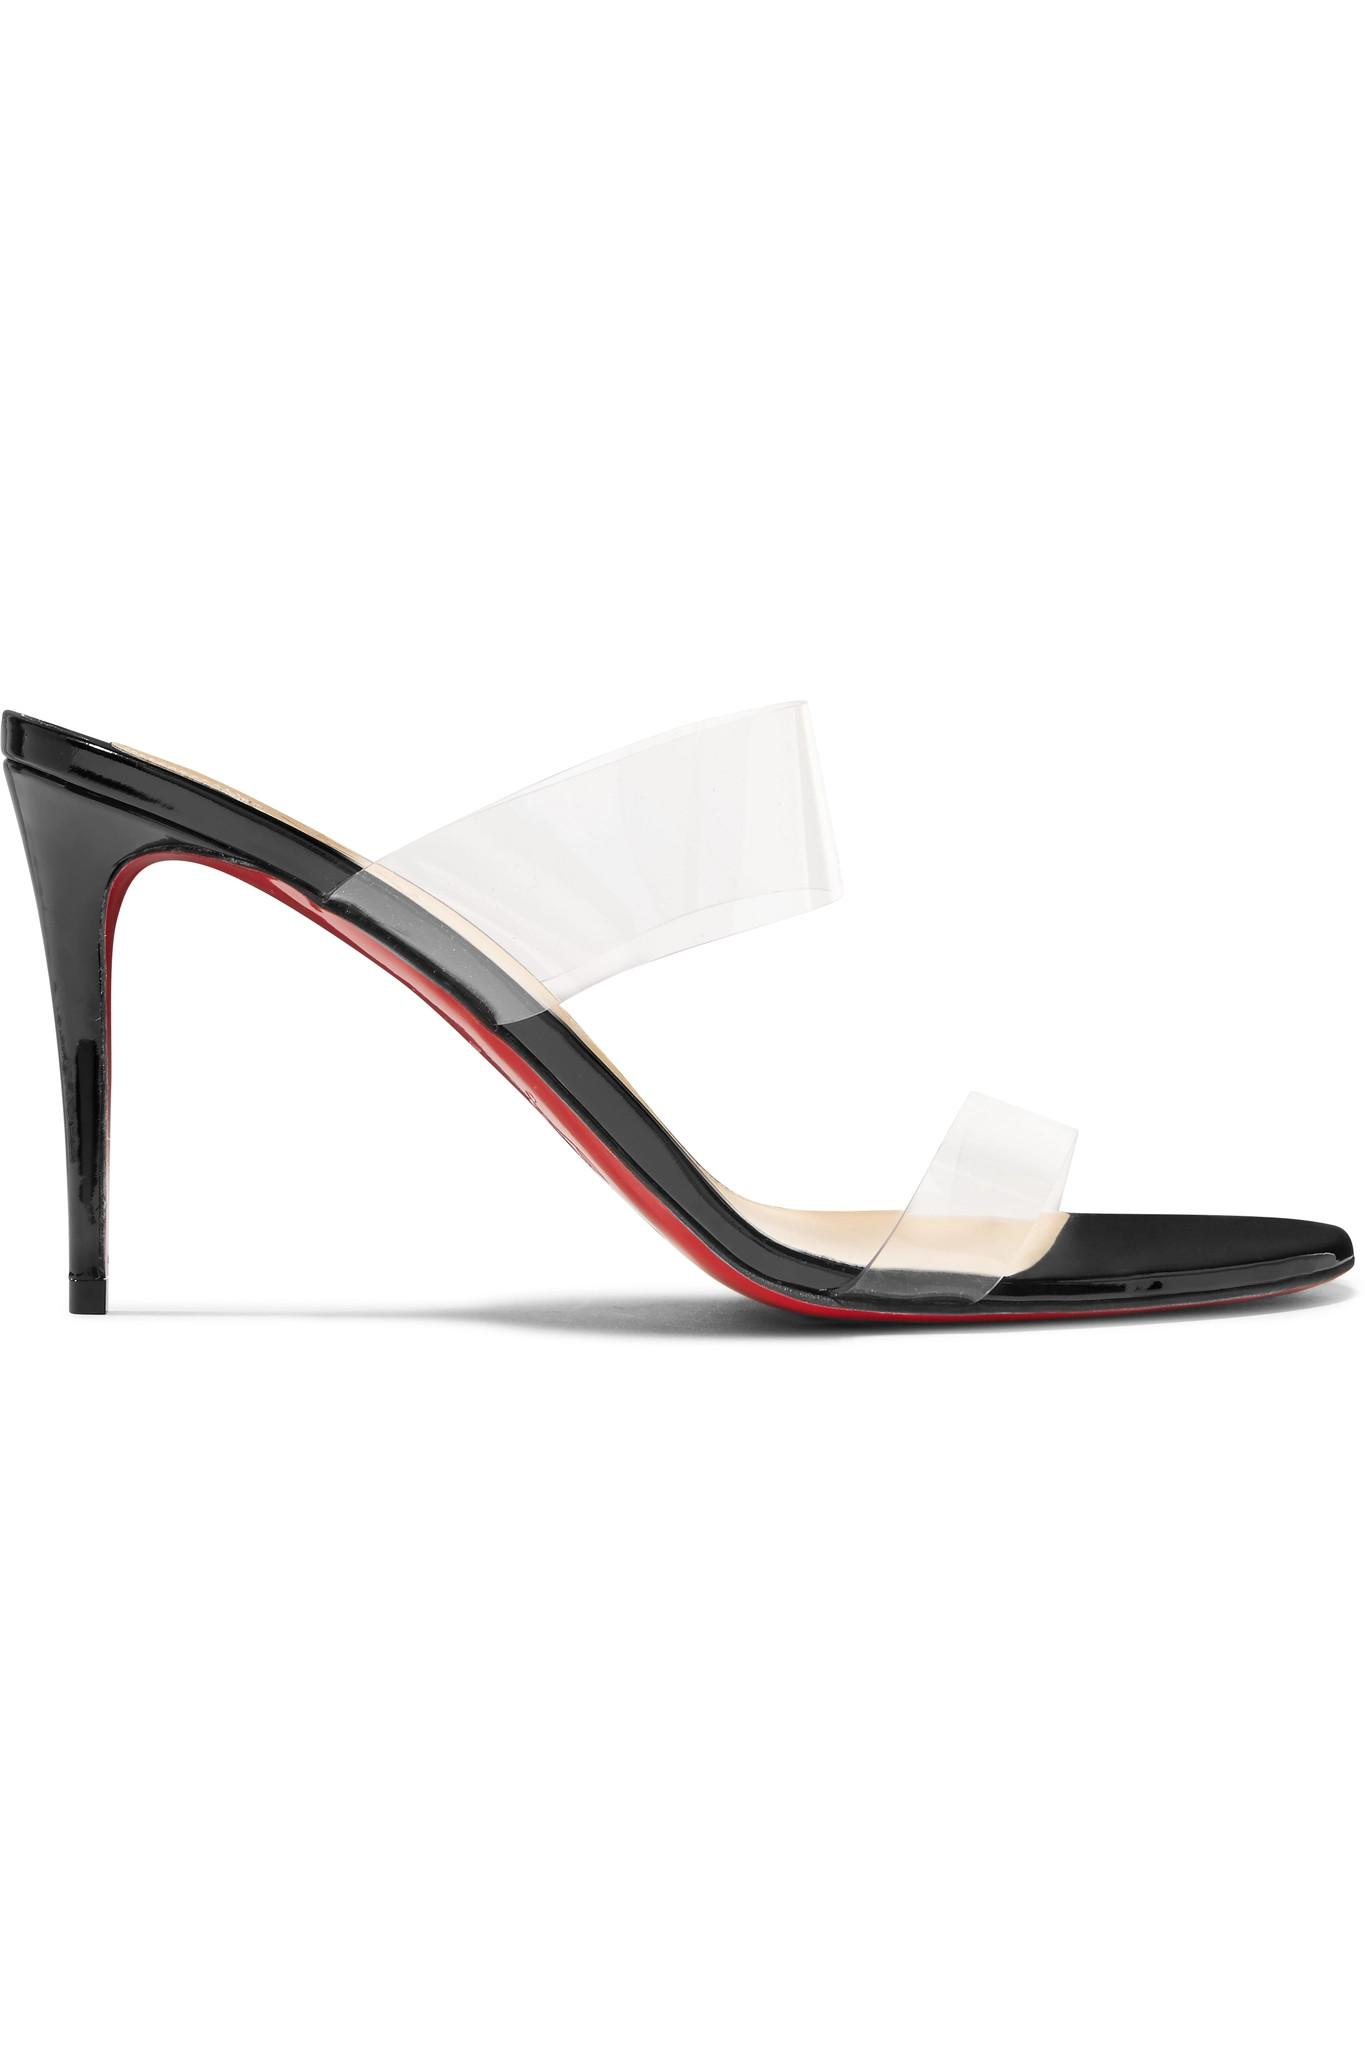 9c5c943b5c8 Lyst - Christian Louboutin Just Nothing 85 Pvc And Patent-leather ...